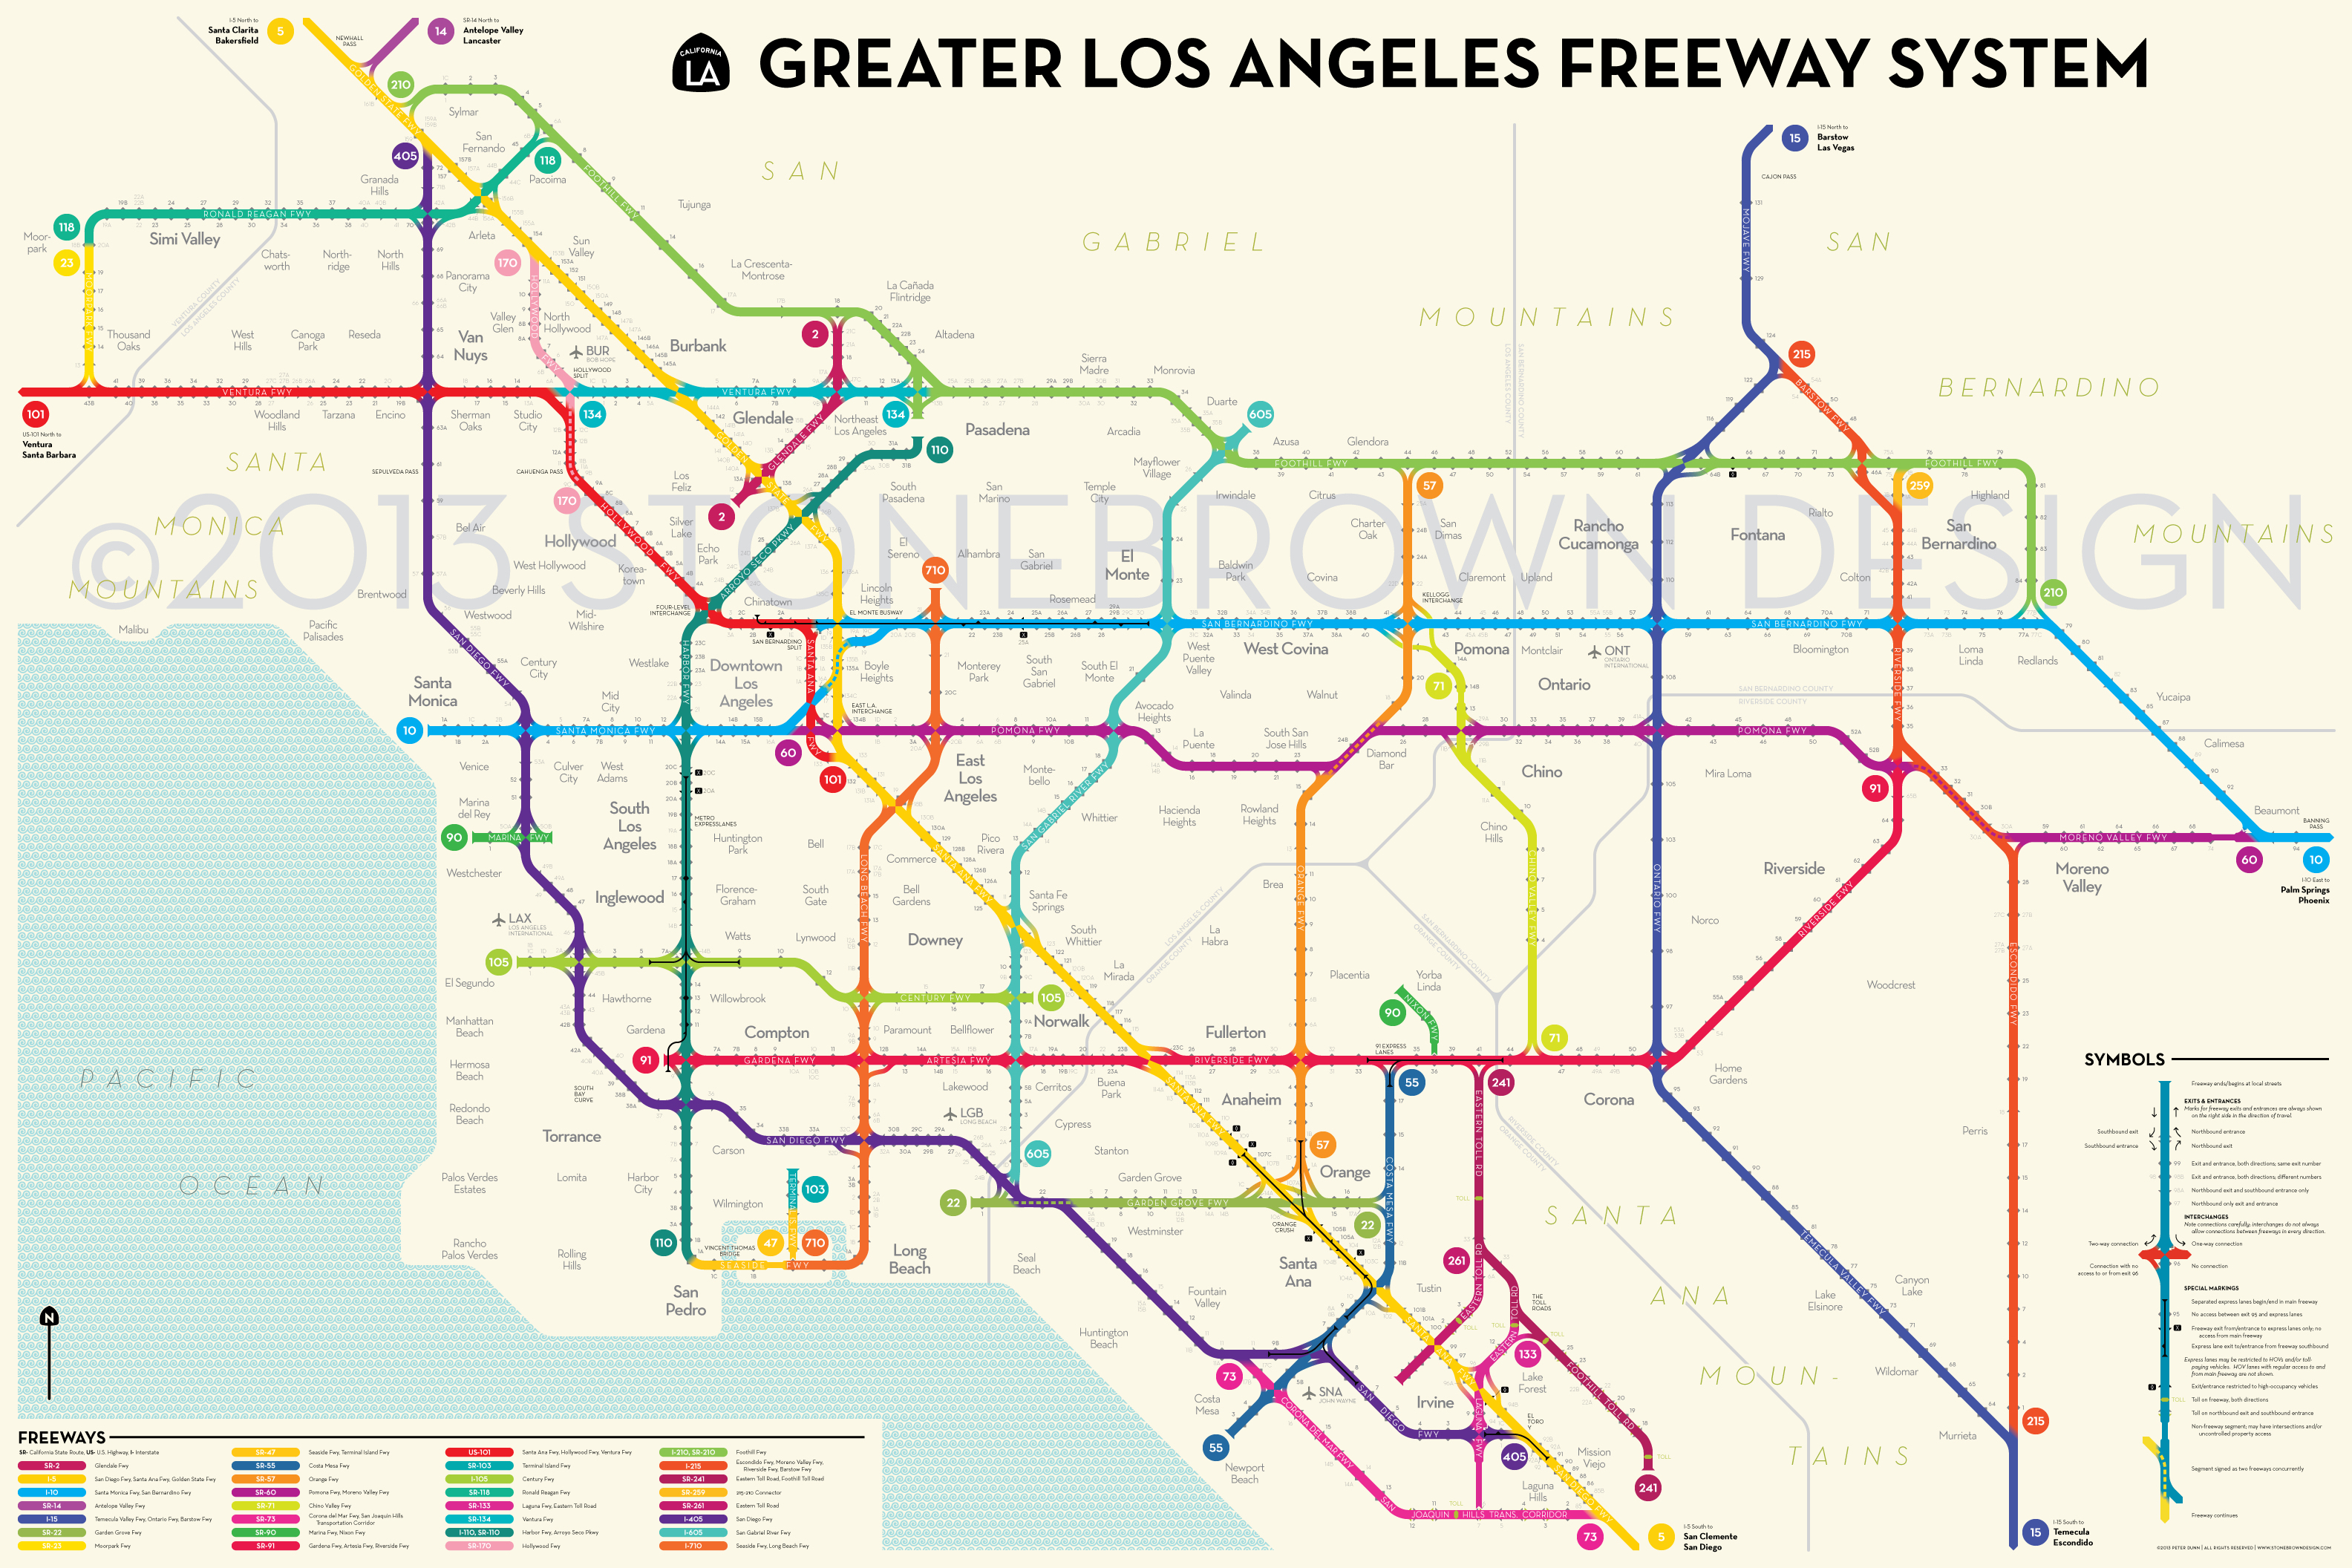 Southern California Toll Roads Map - Klipy - Southern California Toll Roads Map